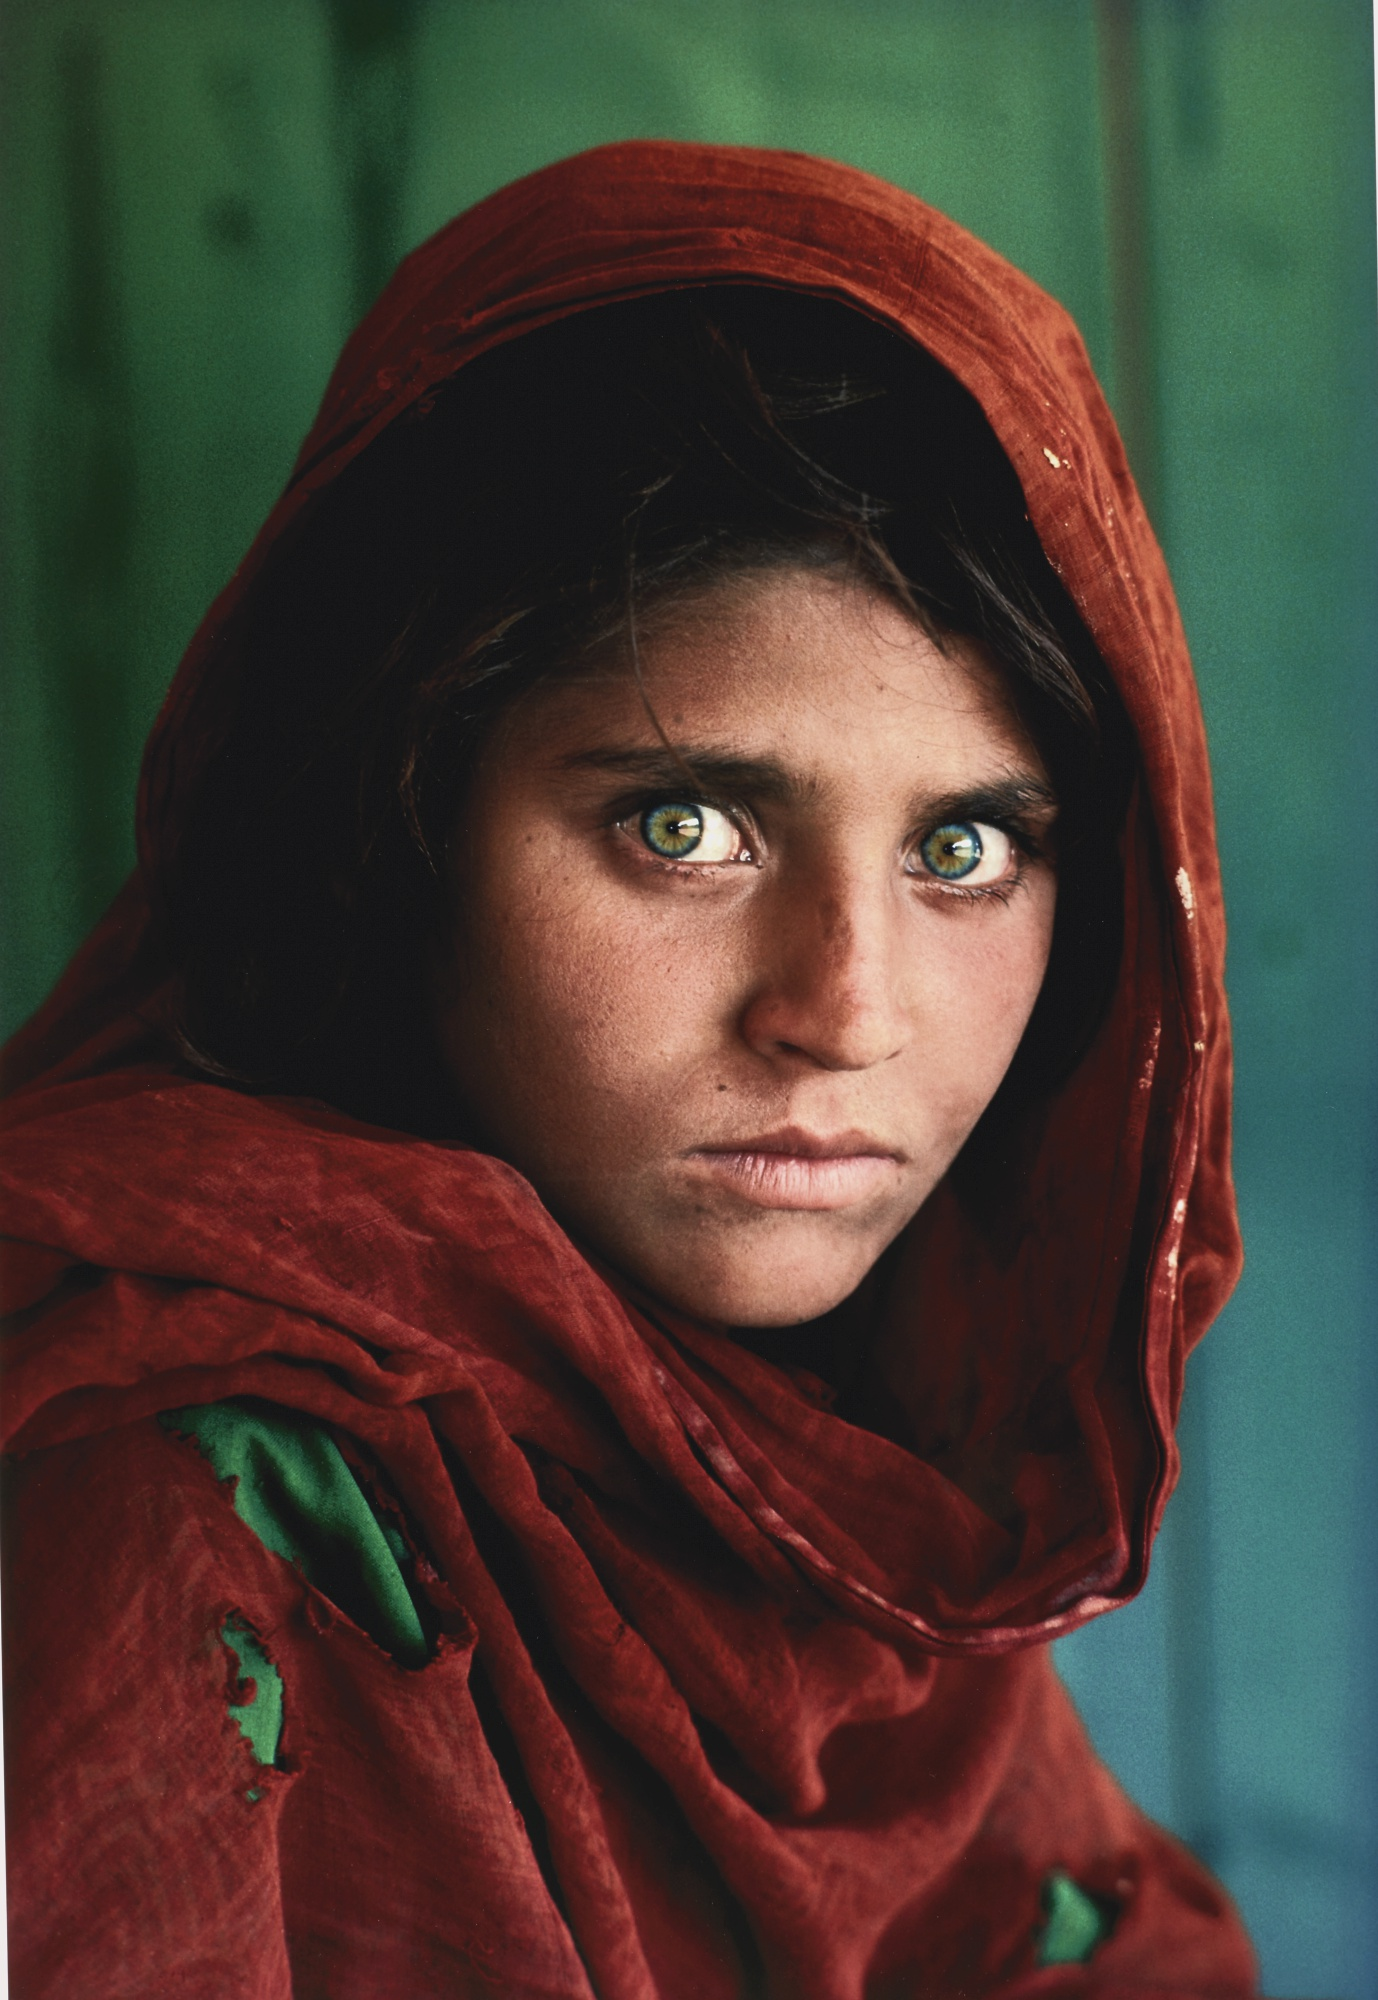 Steve McCurry-Sharbat Gula Afghan Girl Pakistan-1984